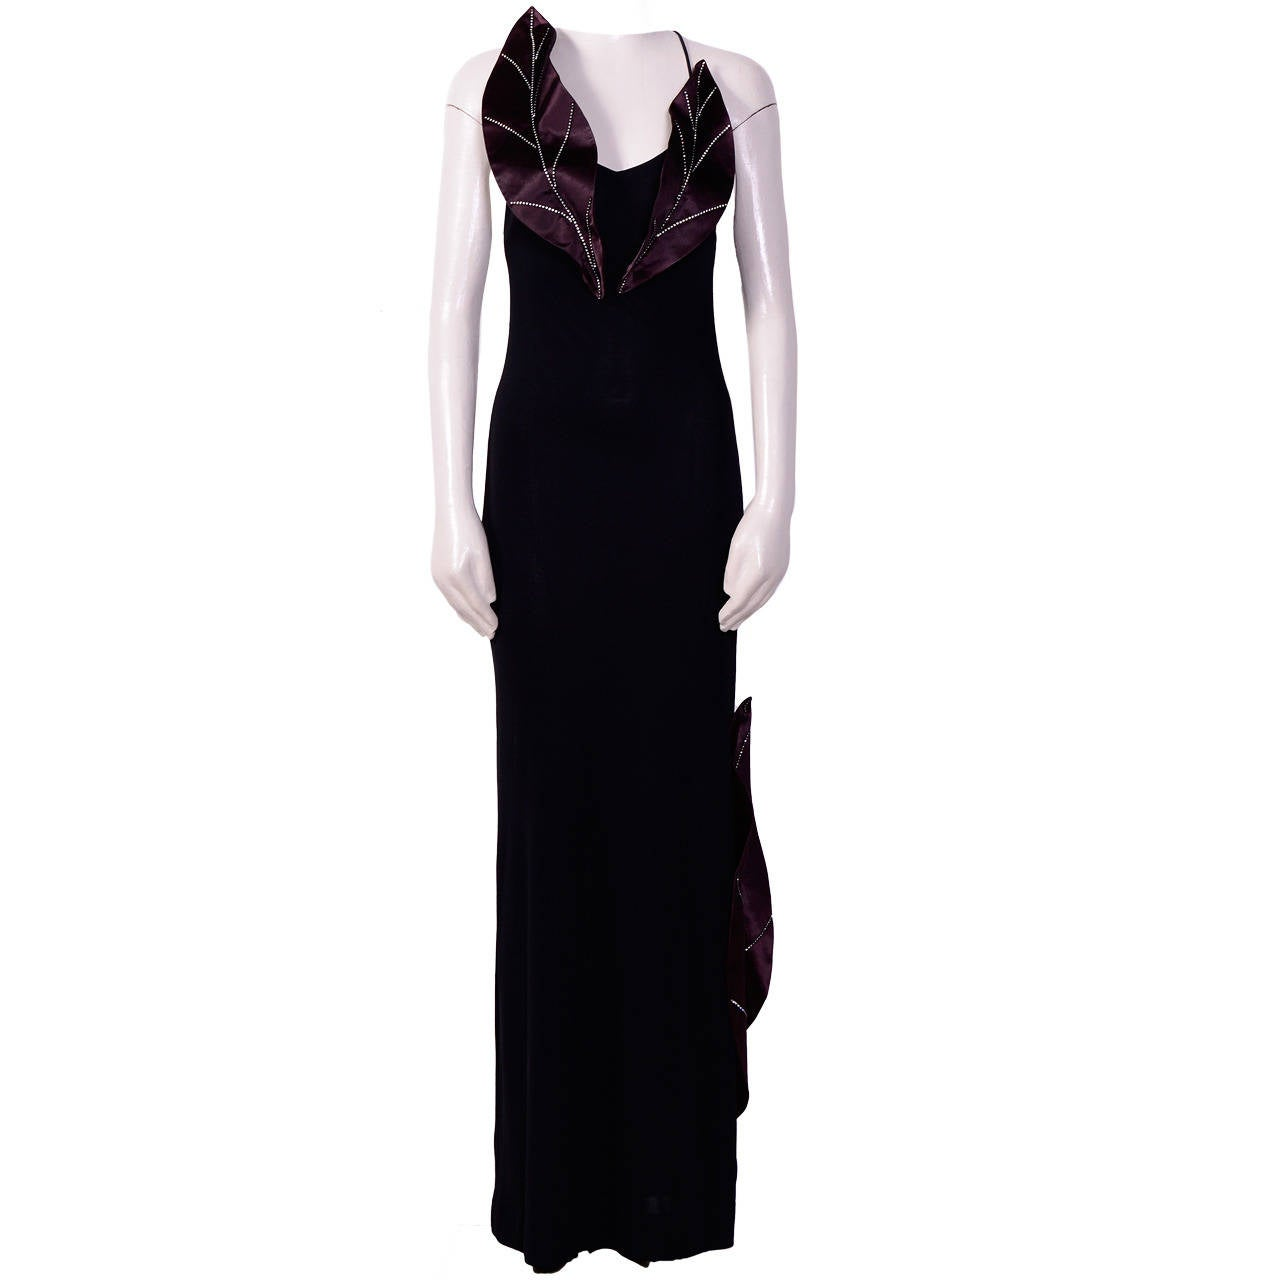 a58b3e5ebab3 Vintage Loris Azzaro Evening Dresses and Gowns - 49 For Sale at 1stdibs